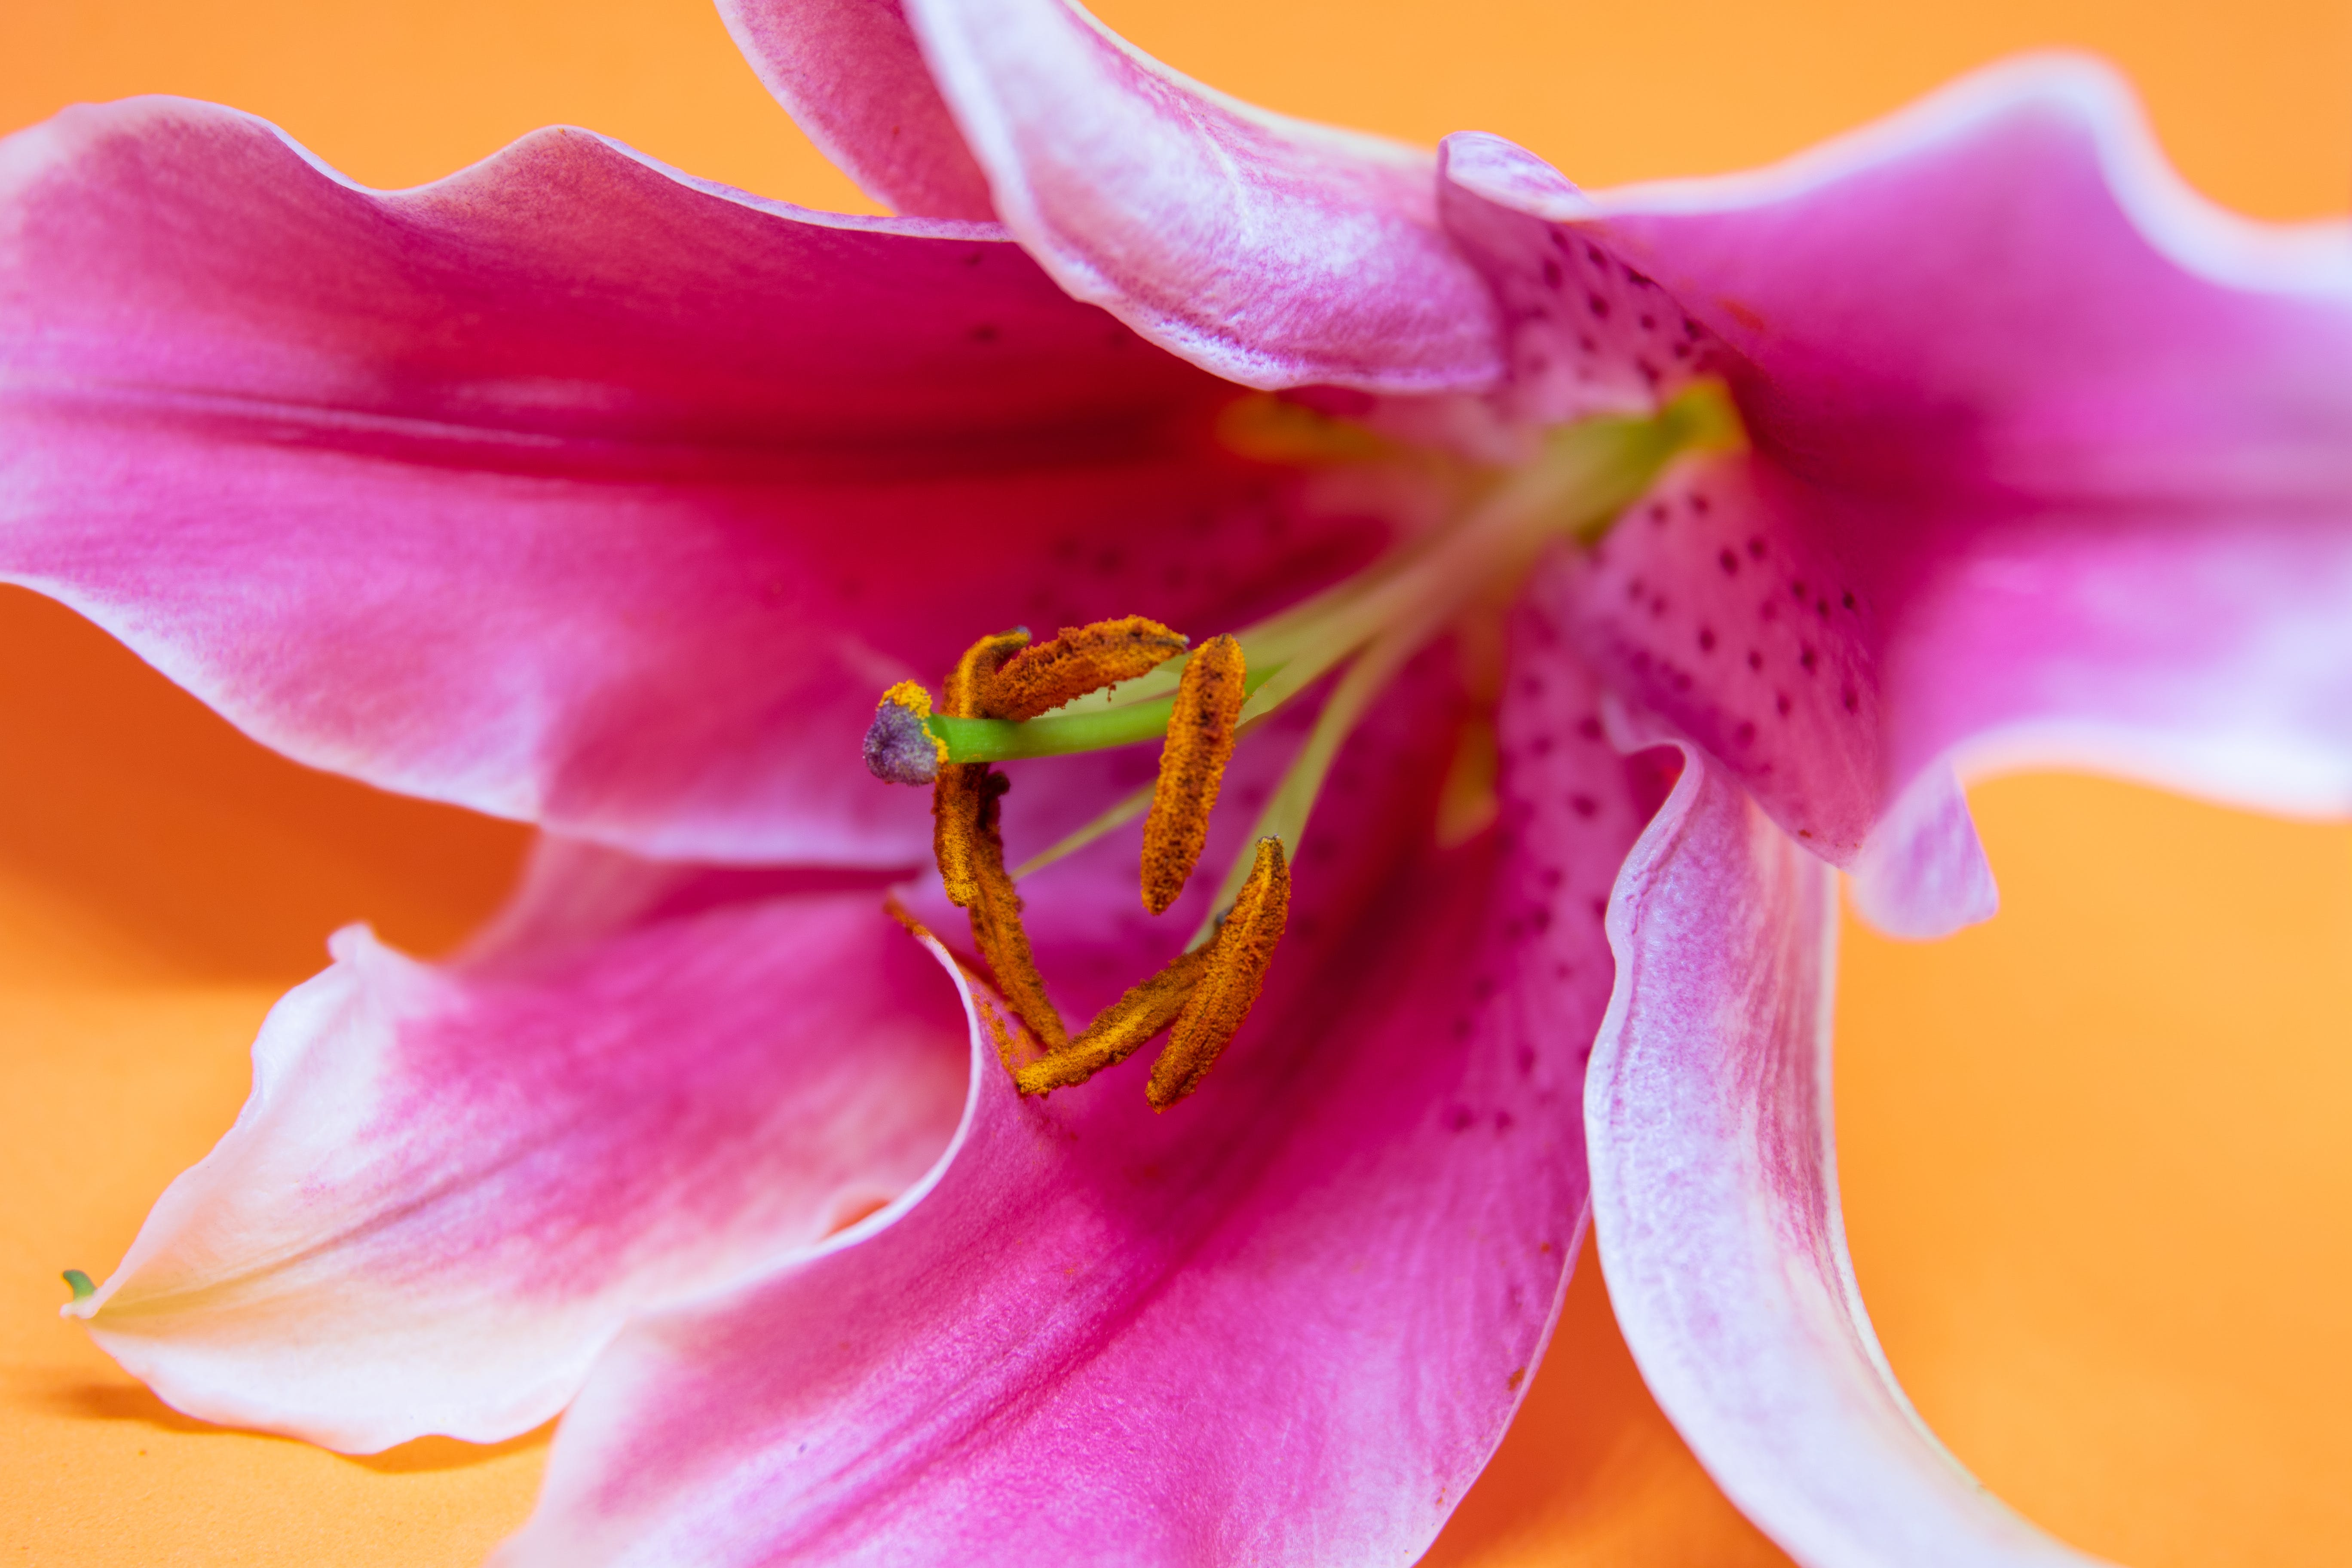 Close-up Photography of Pink Lily Flower